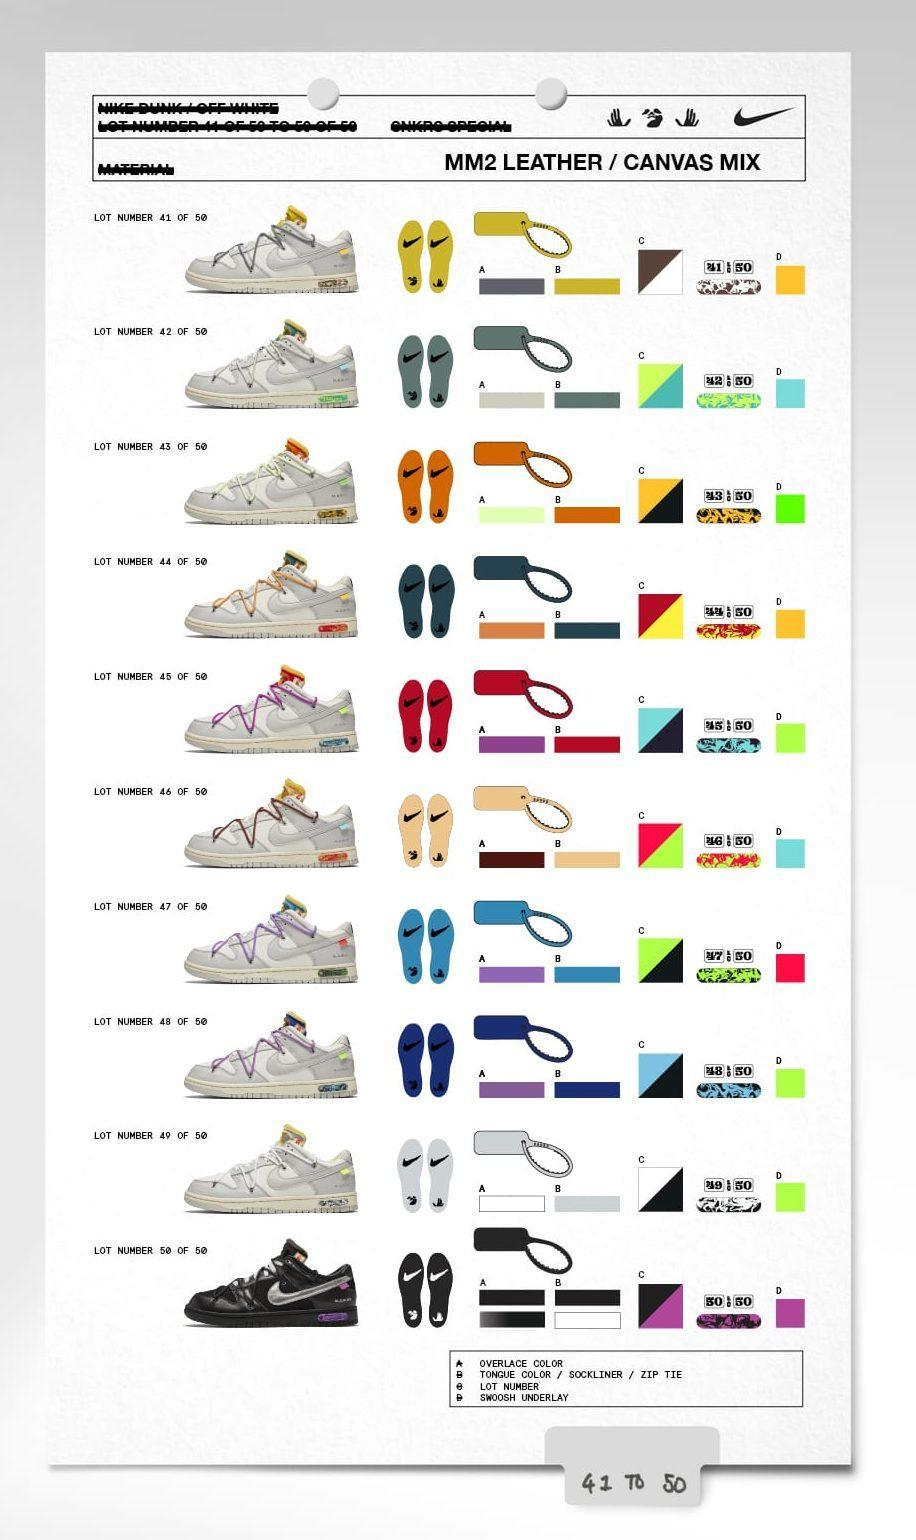 The Off-White x Nike Dunk Low collabs. - Credit: Courtesy of Nike